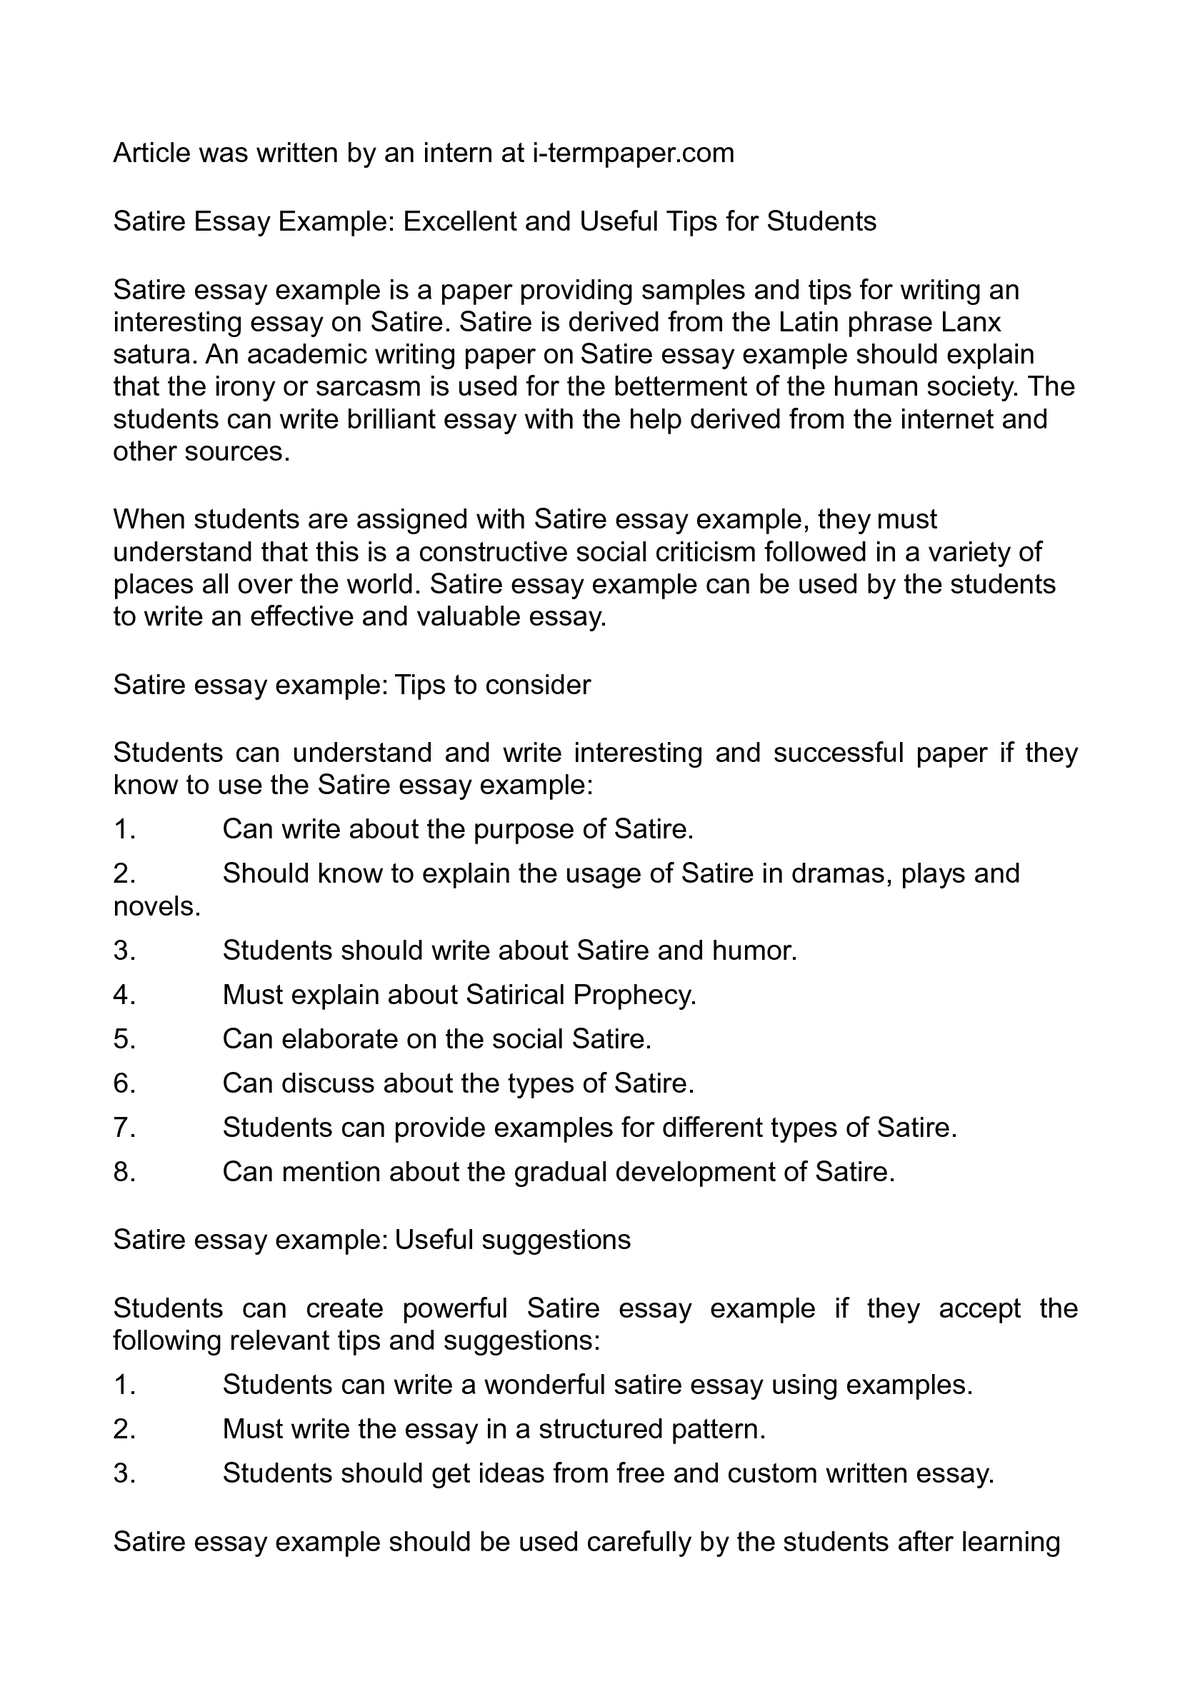 thanksgiving essay topics thanksgiving essay sample thanksgiving  satire essay topics satirical essay topics gxart example of satirical essay topics gxart orgexamples of satire